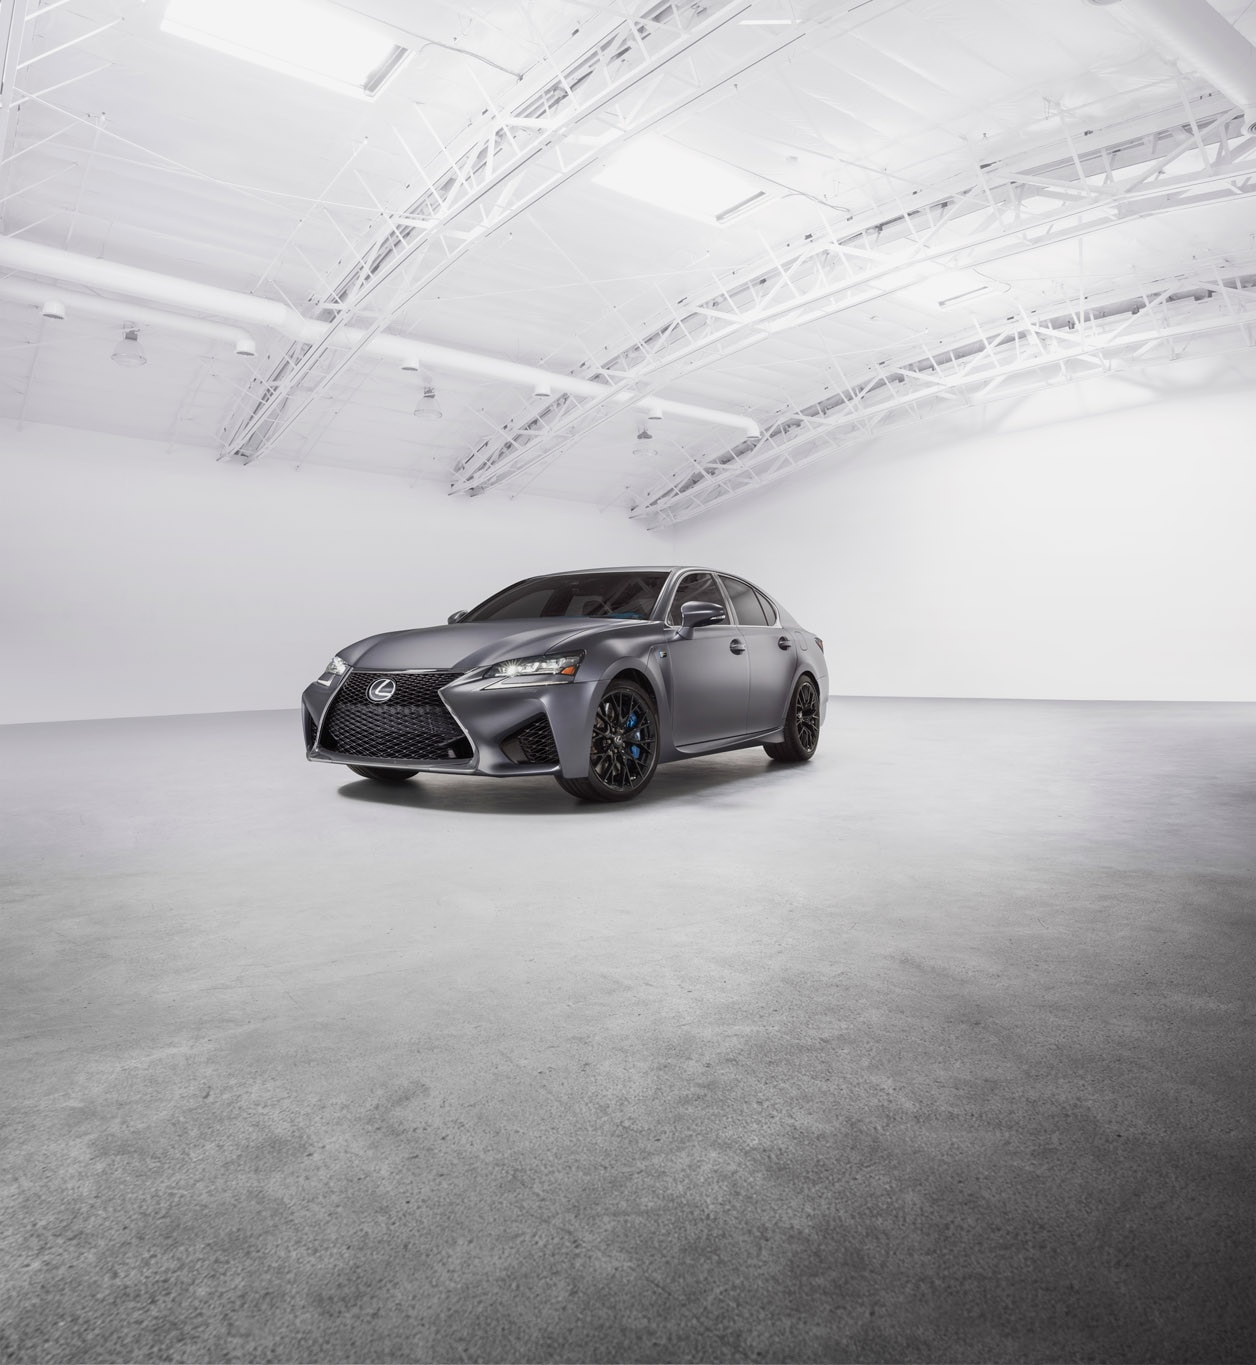 10th Anniversary Edition 2019 Lexus GS F And RC F Get The